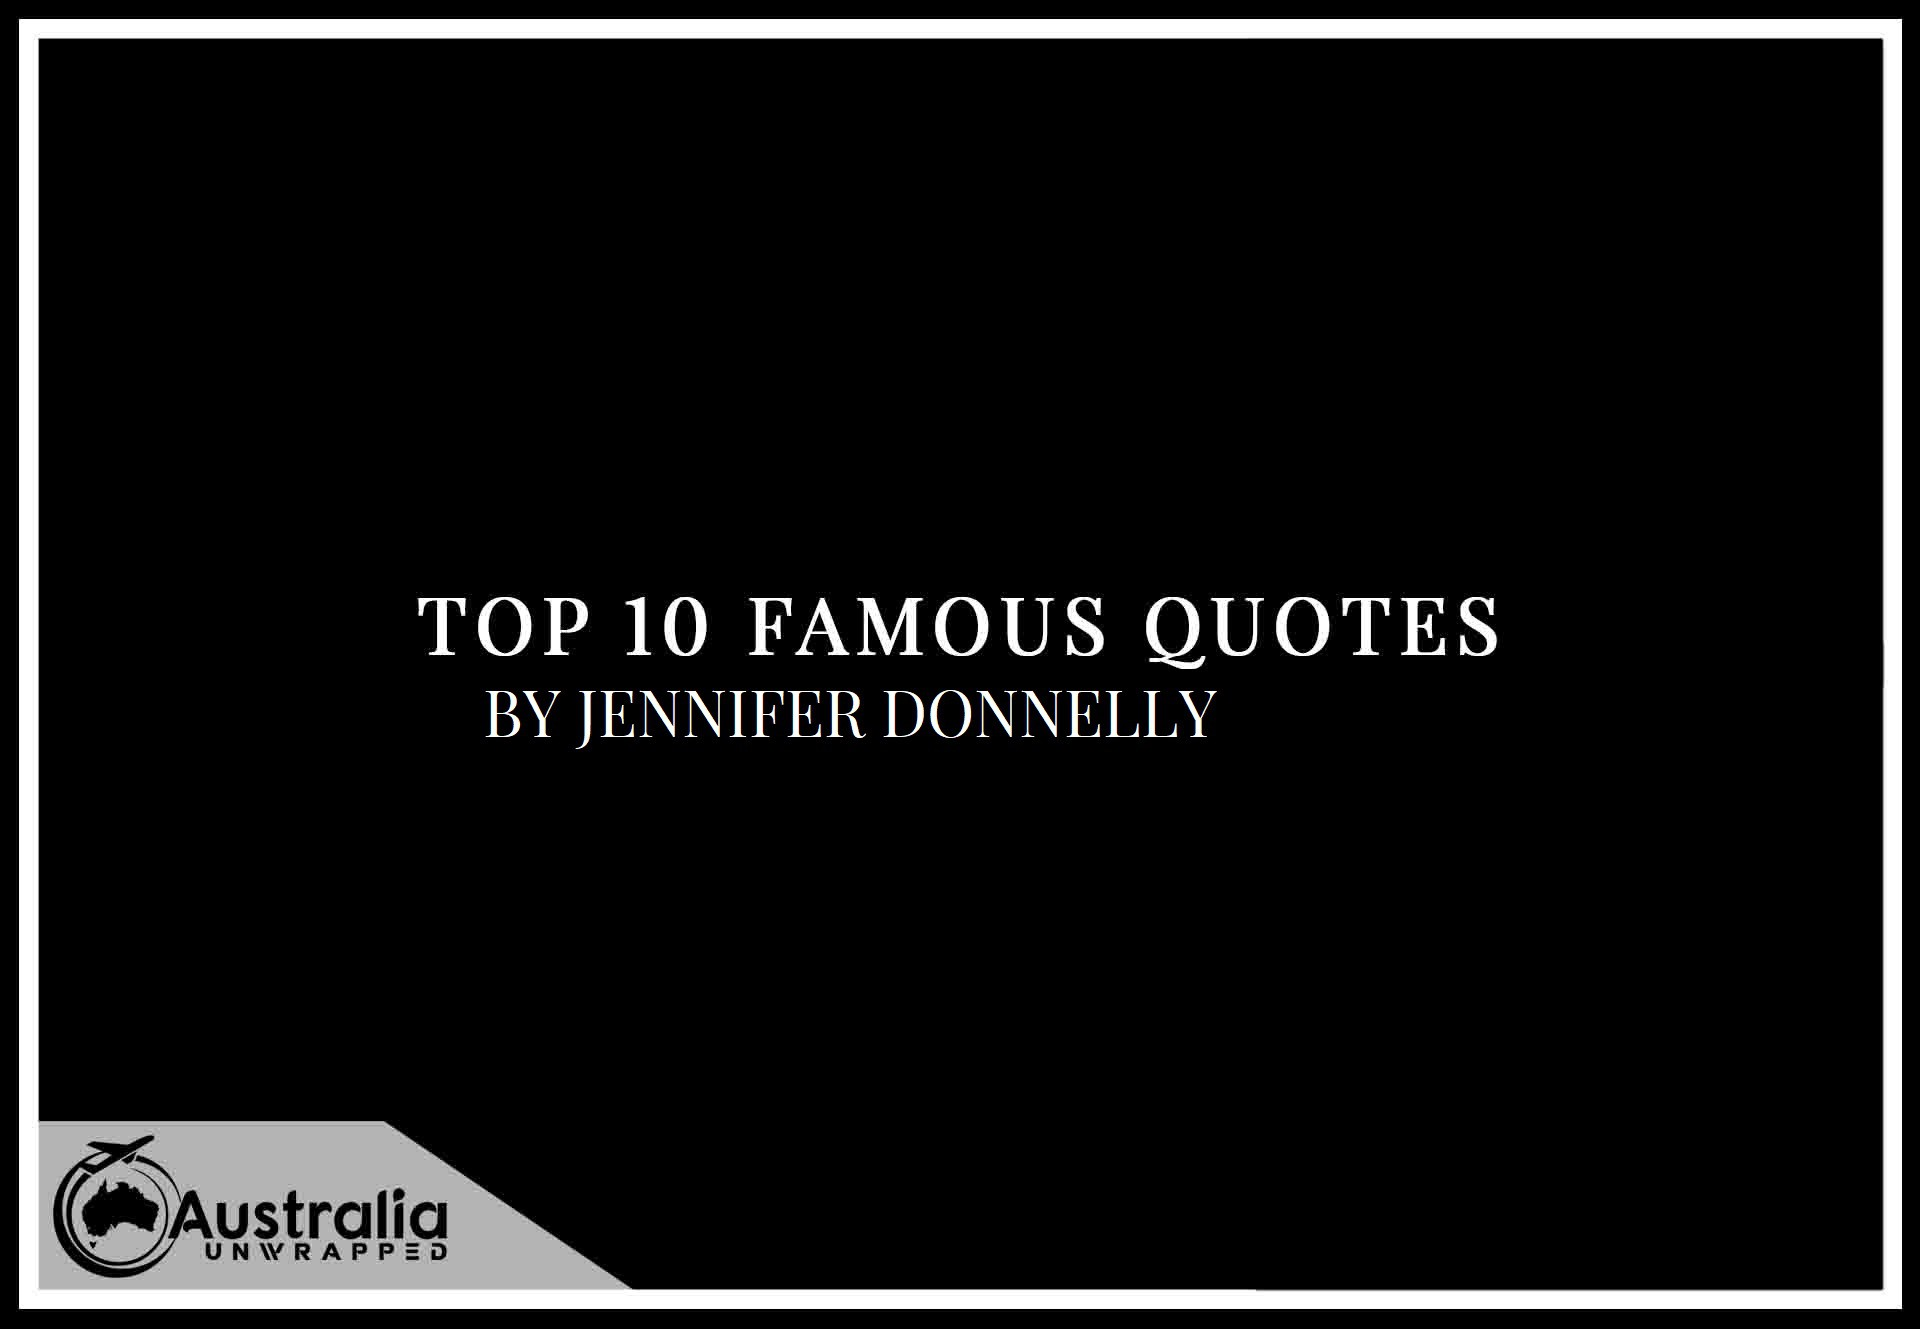 Top 10 Famous Quotes by Author Jennifer Donnelly